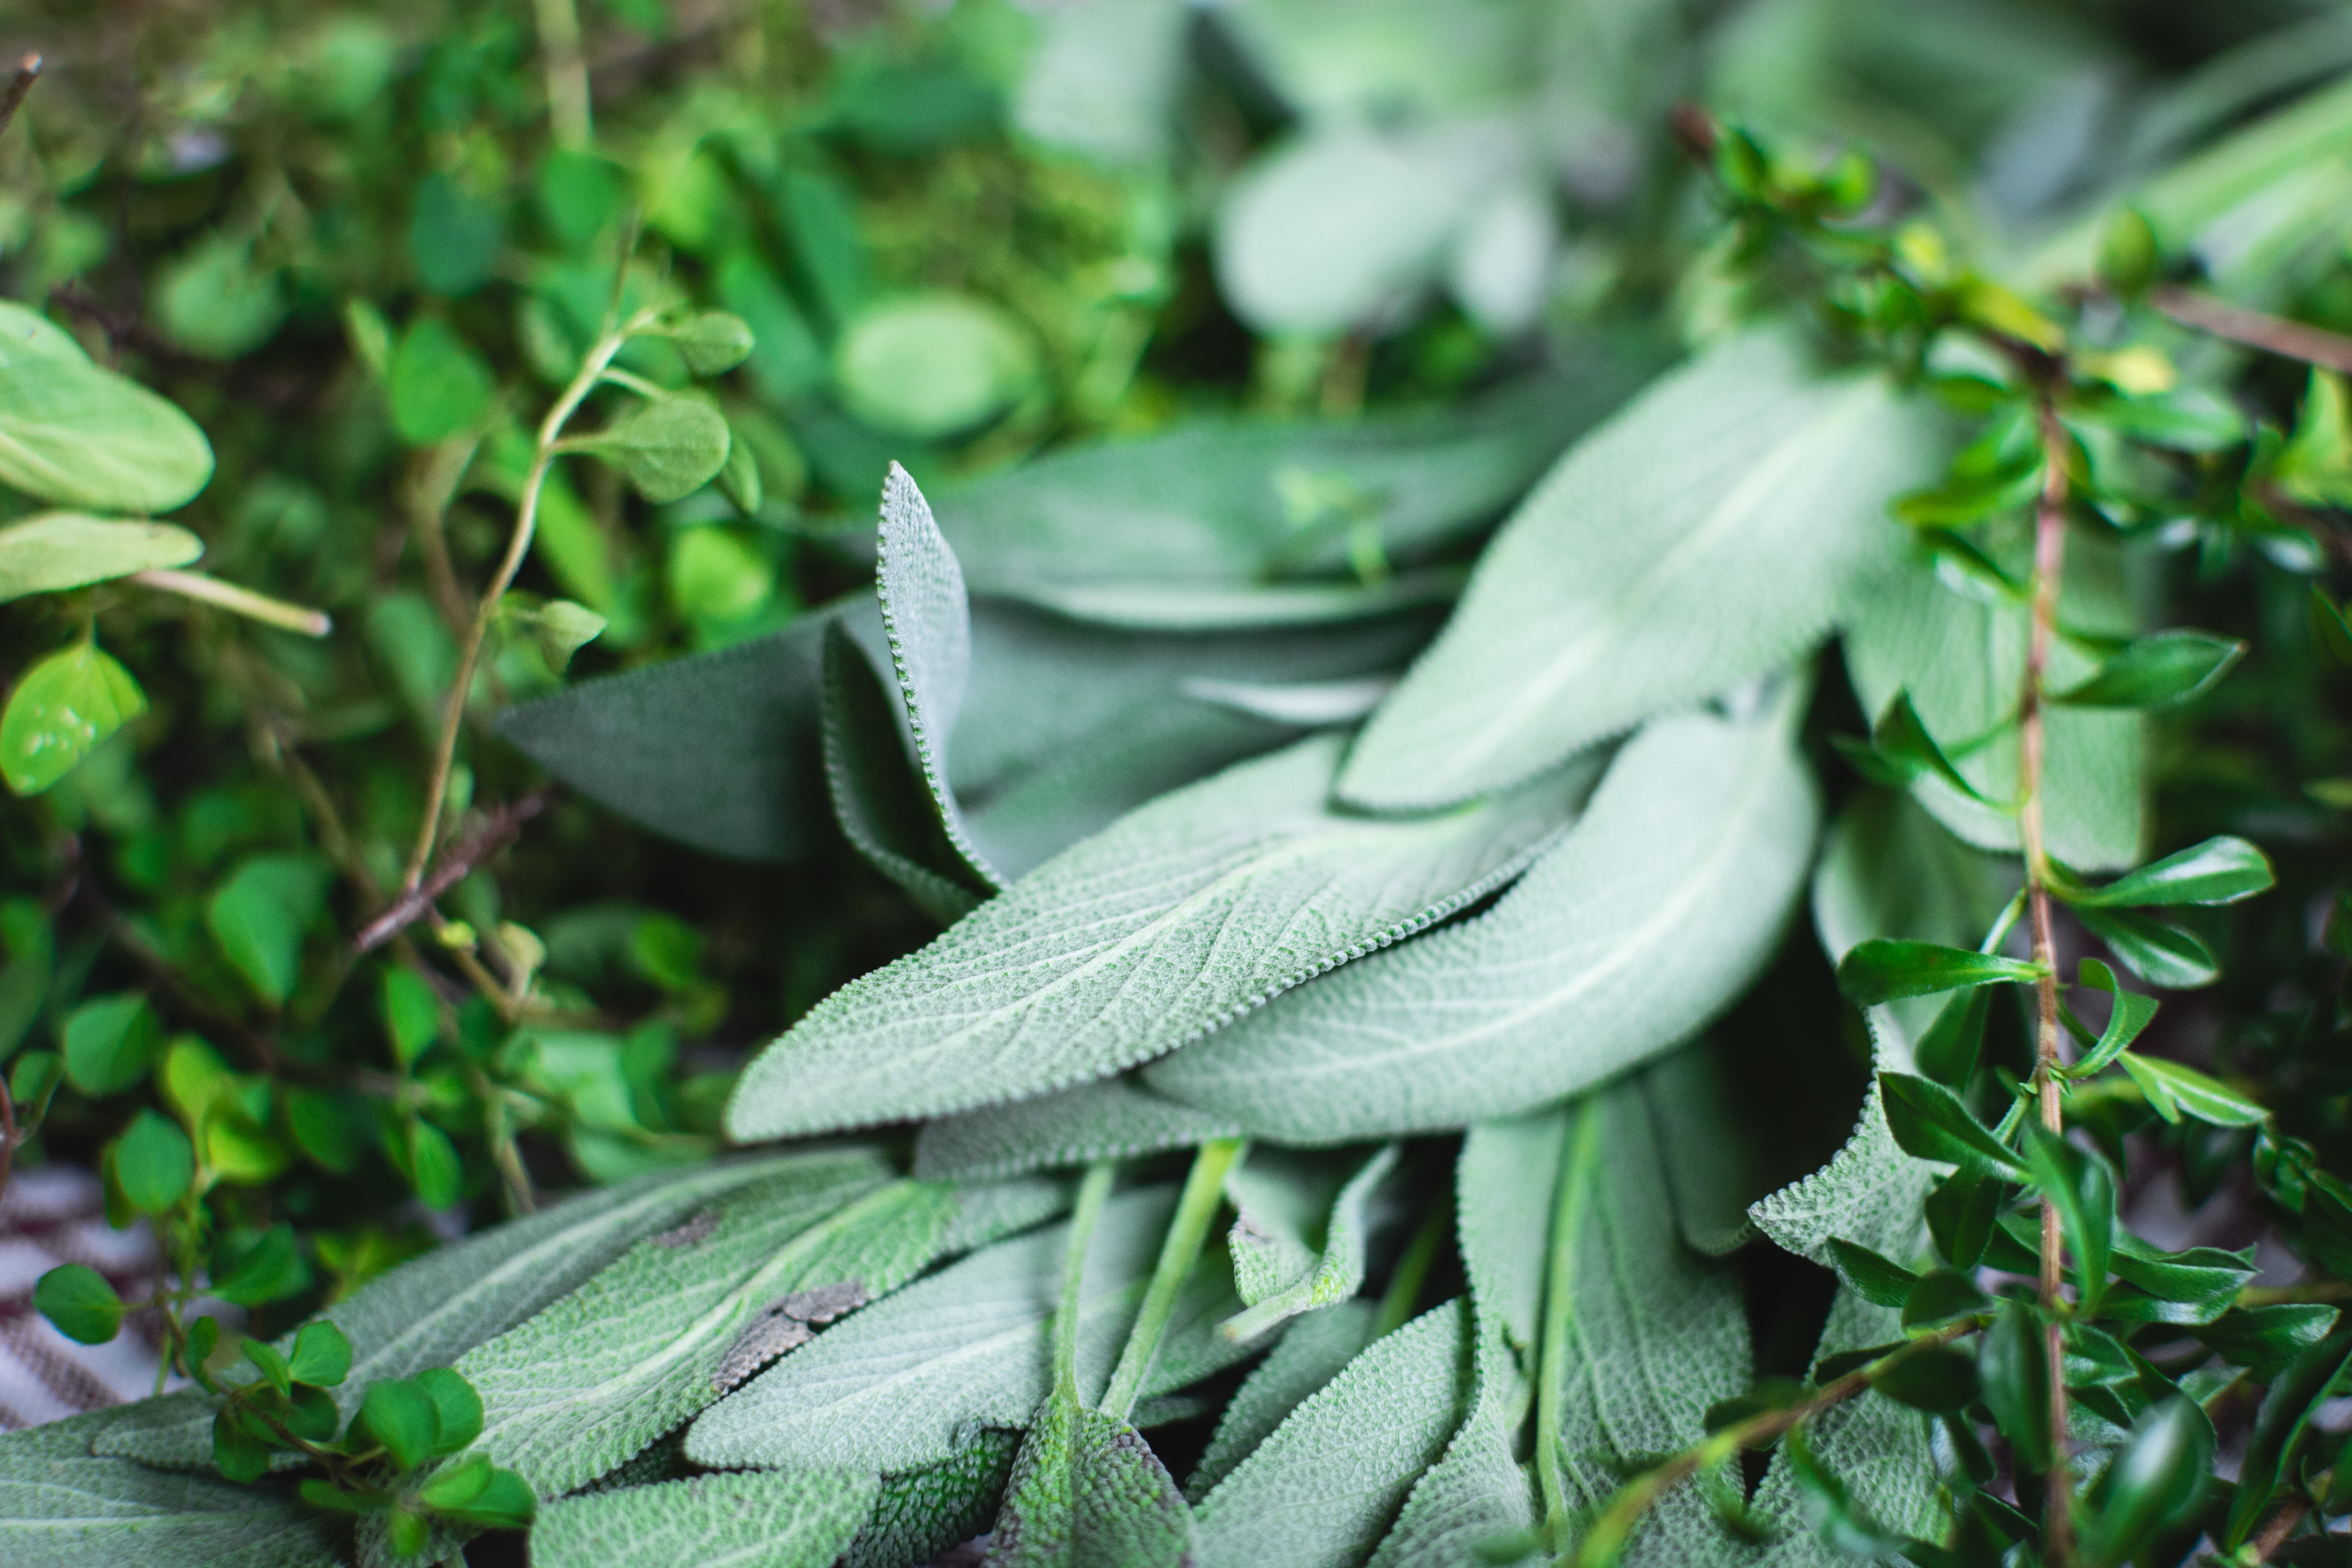 Herbs to have in your garden or cupboard